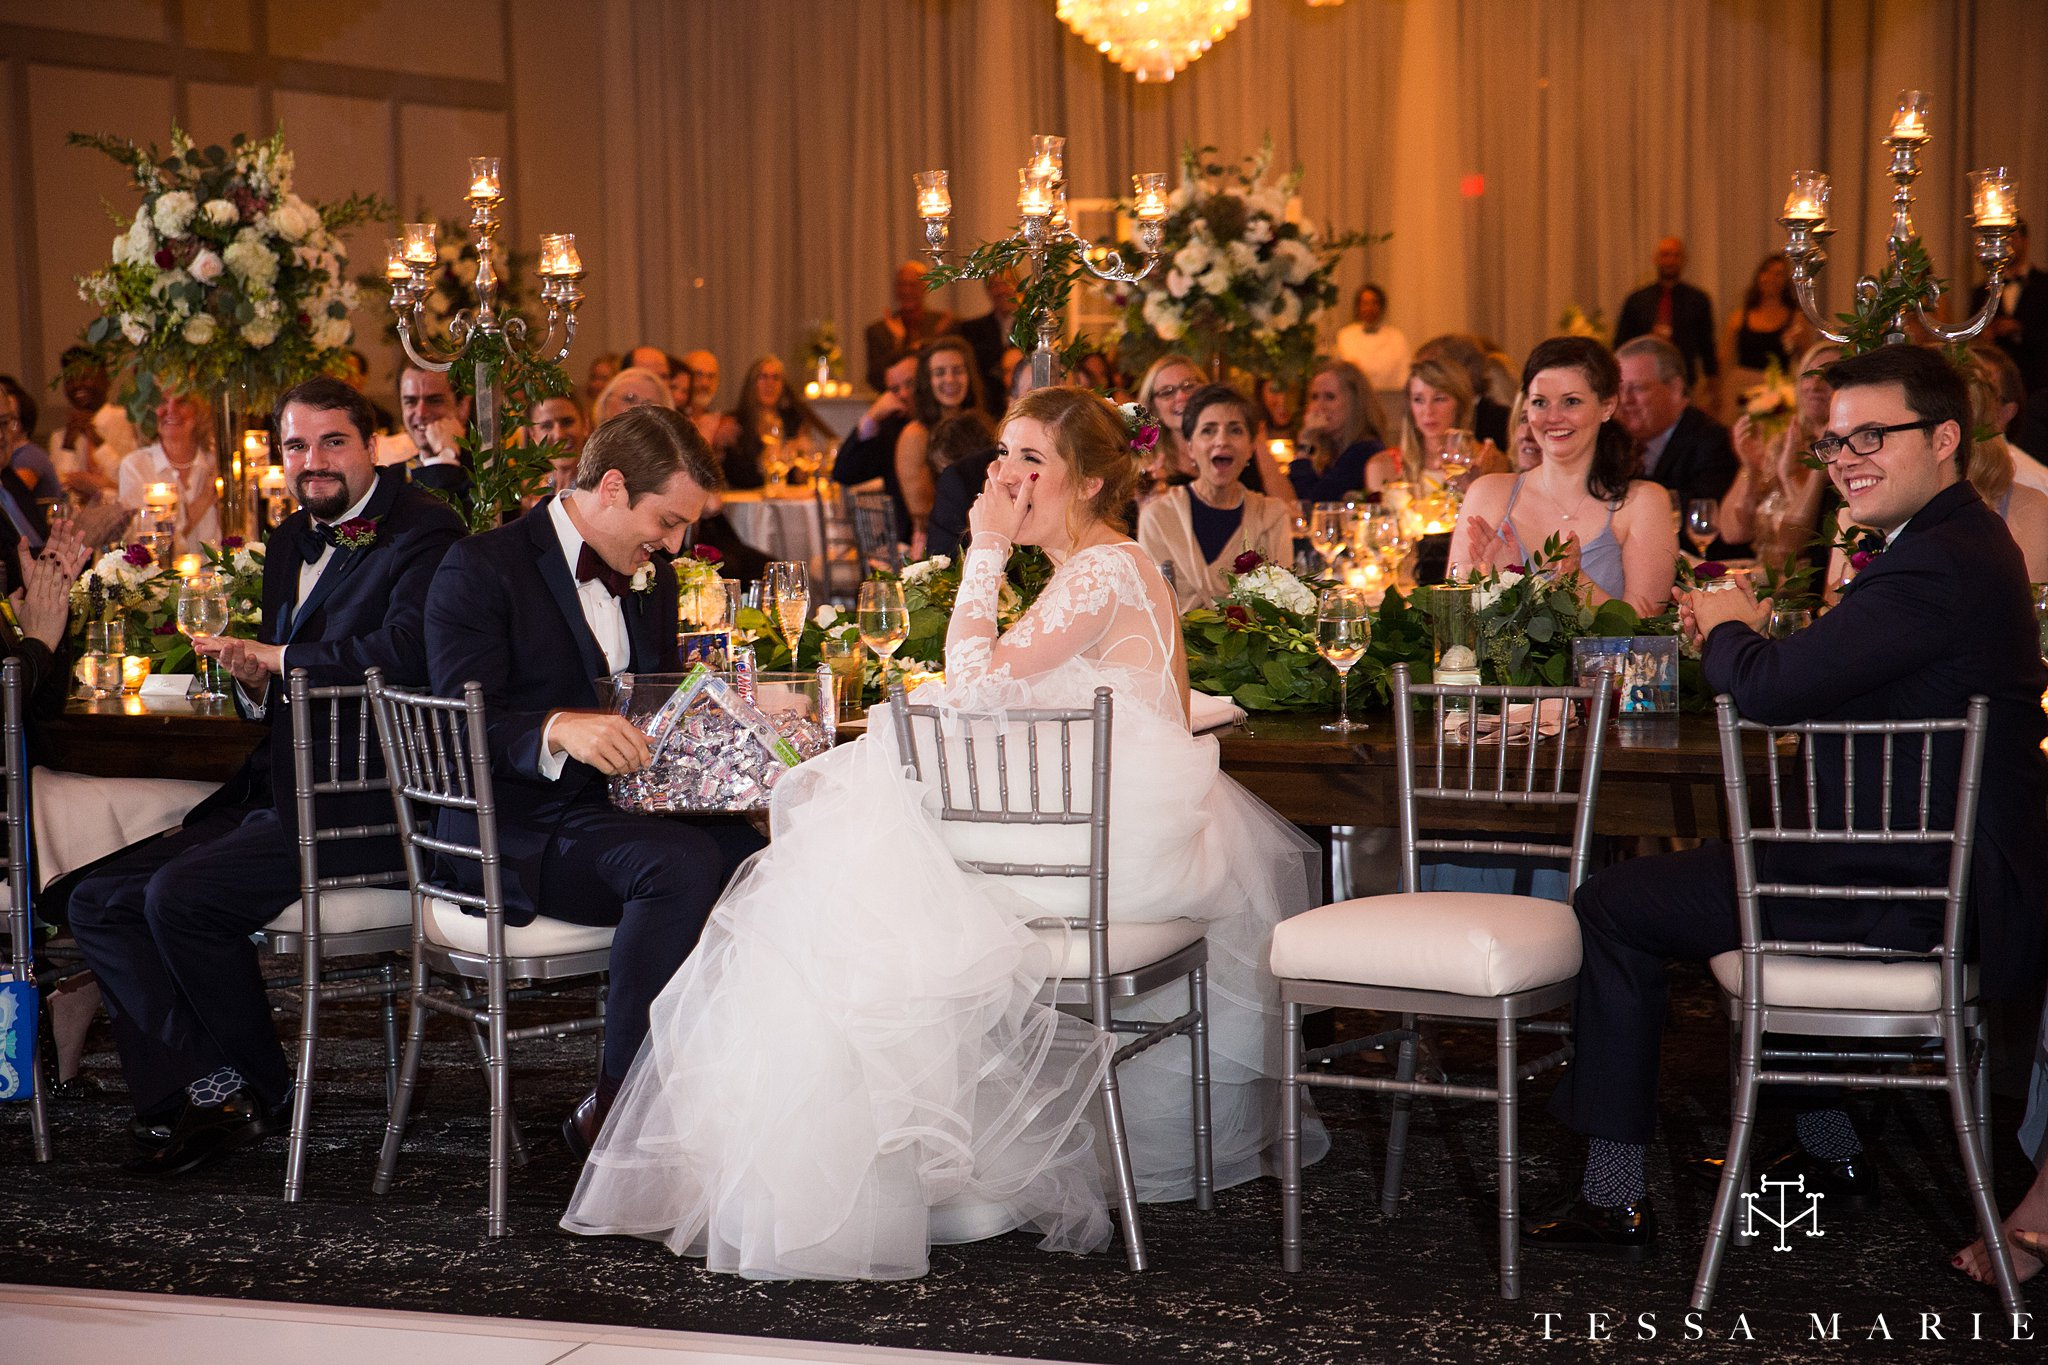 tessa_marie_weddings_estate_wedding_flourish_wedding_legendary_events_wedding_angels_bride_groom_wedding_Day_rainy_wedding_day_fall_october_wedding_atlantas_best_wedding_professionals_0025.jpg